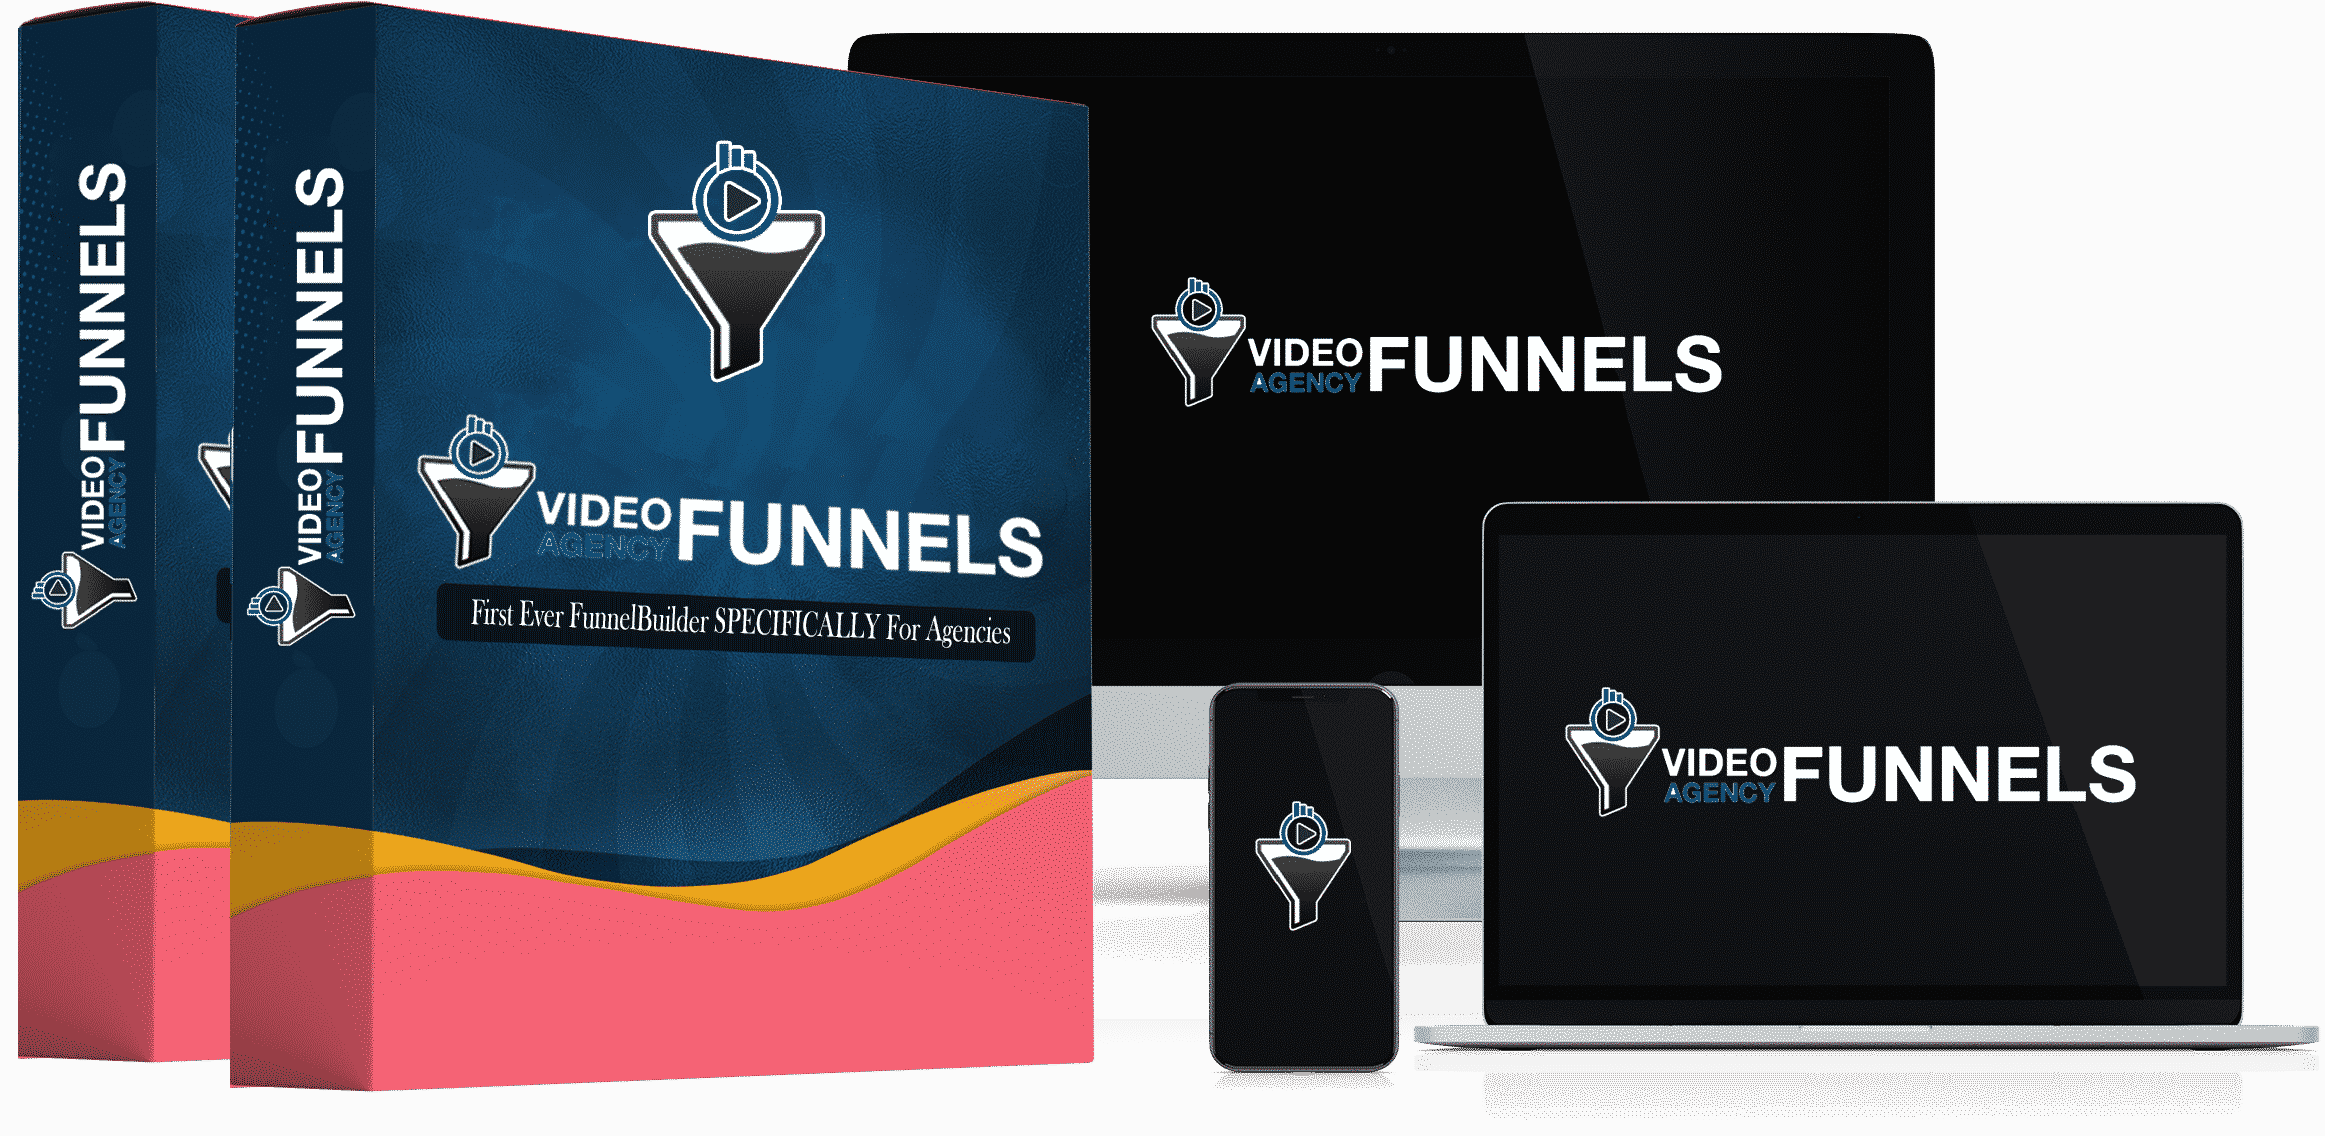 Video Agency Funnels Review with 🎁Custom Bonuses🎁 - #1 Funnel-Builder SPECIFICALLY created for Agencies, Video Marketers and Freelancers…